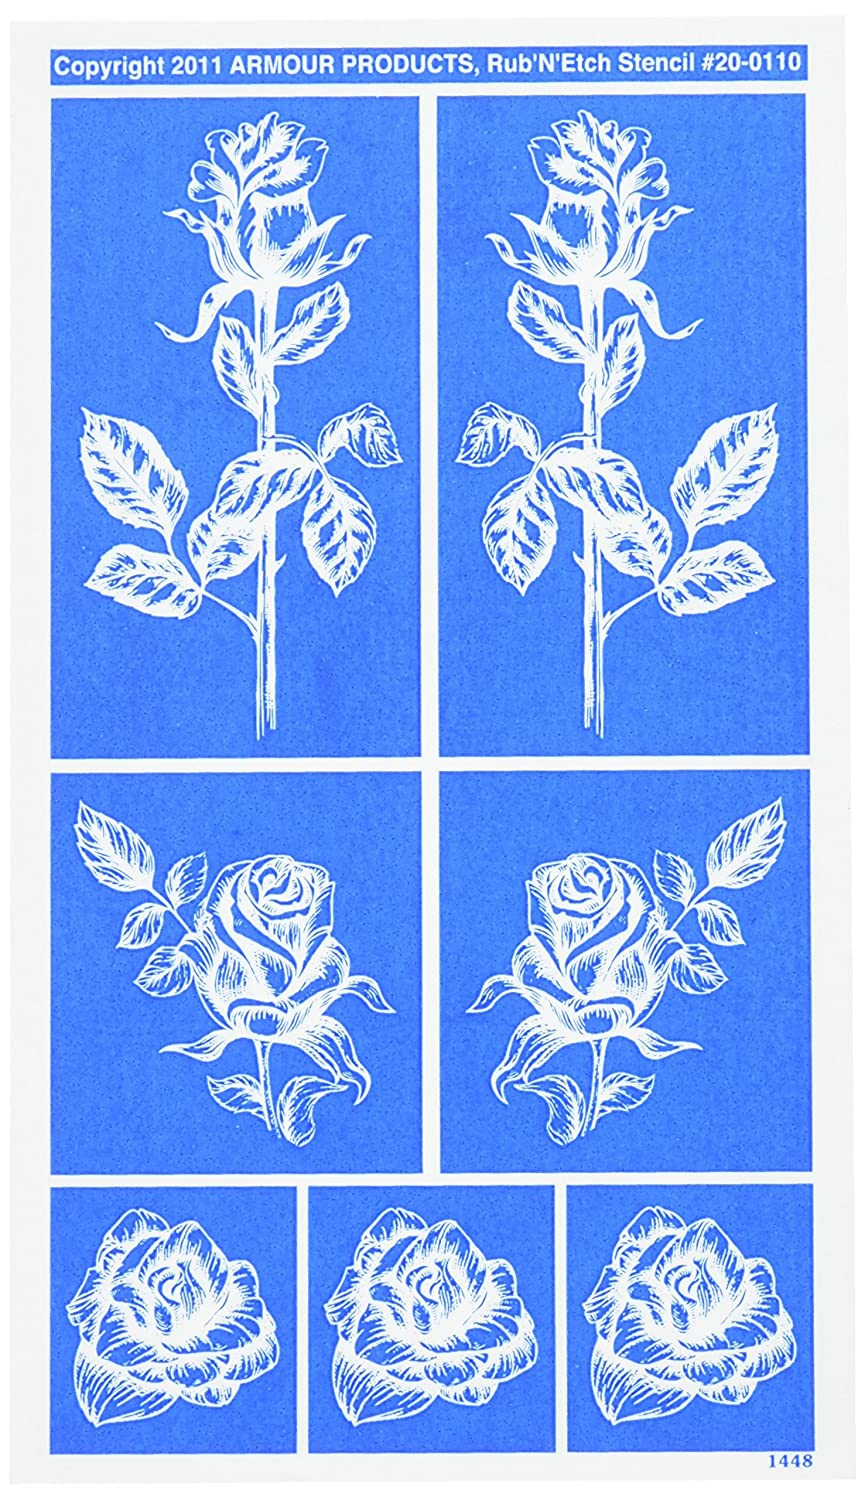 Rub 'N' Etch Designer Stencil 5x8-Detailed Roses Armour Products 20R-0110